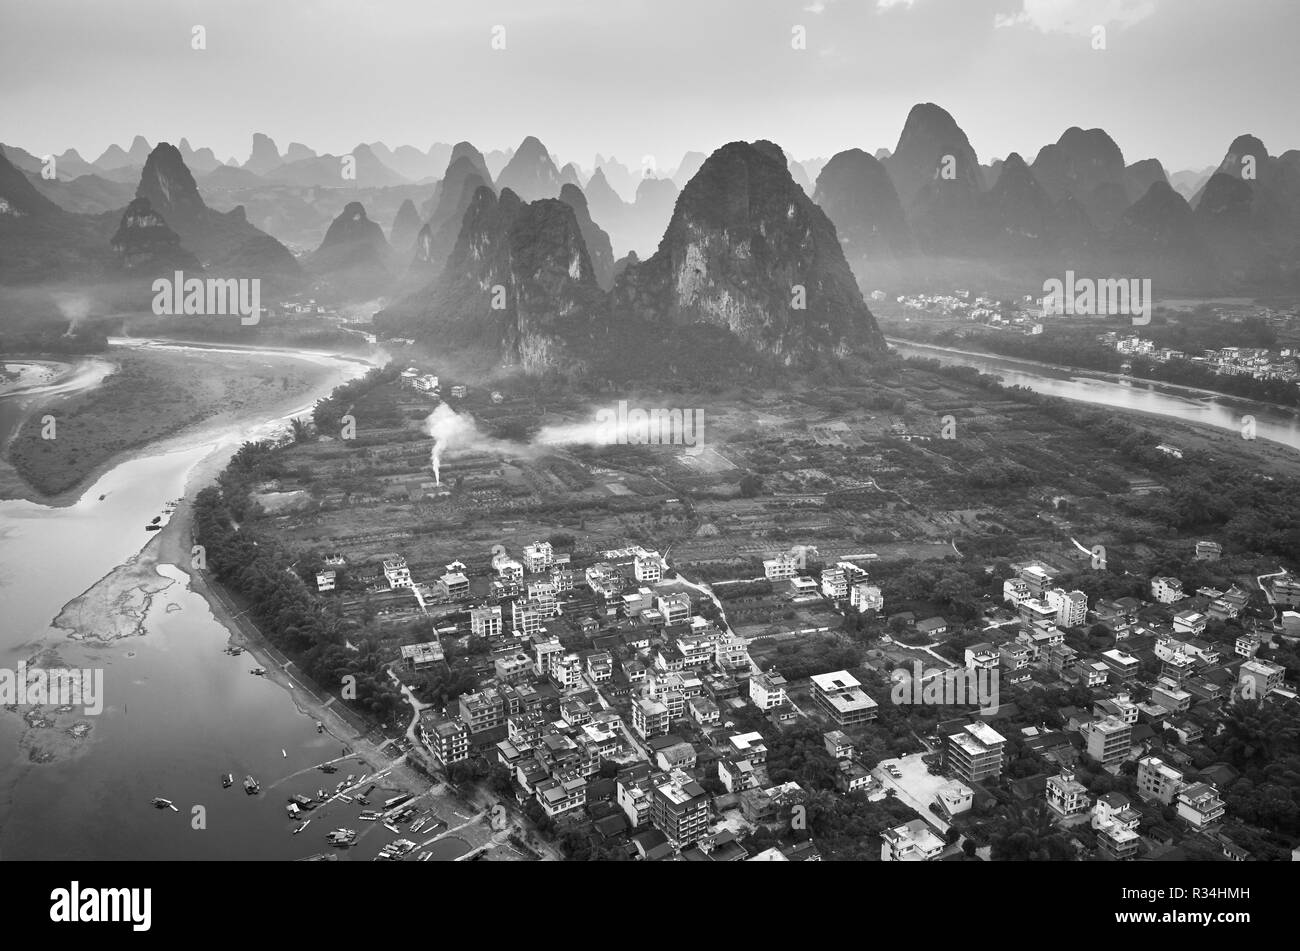 Black and white picture of the Lijiang River at sunset, Guangxi, China. - Stock Image